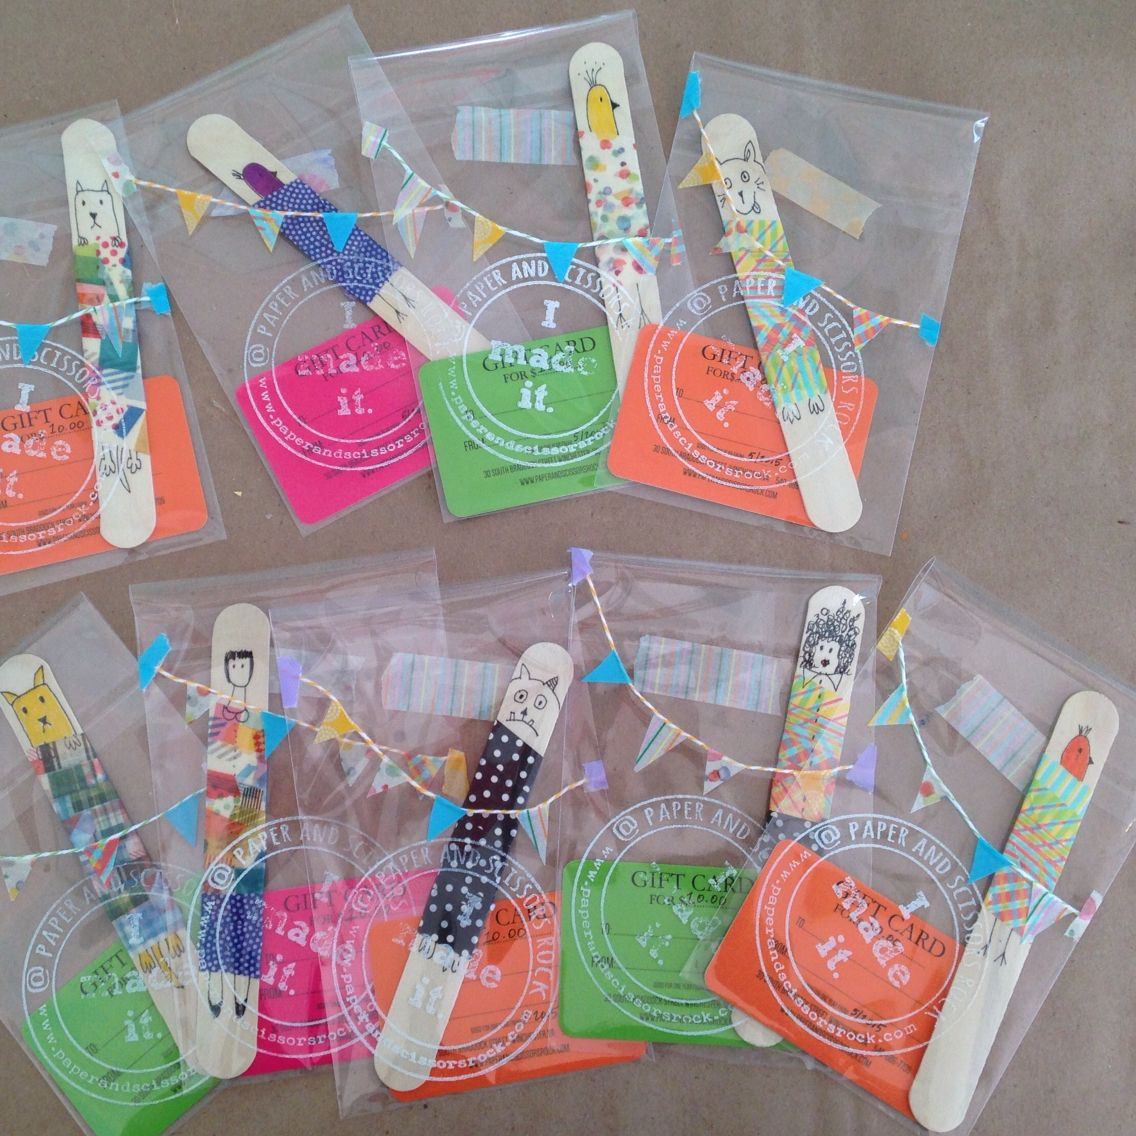 Fun gift card party favors!